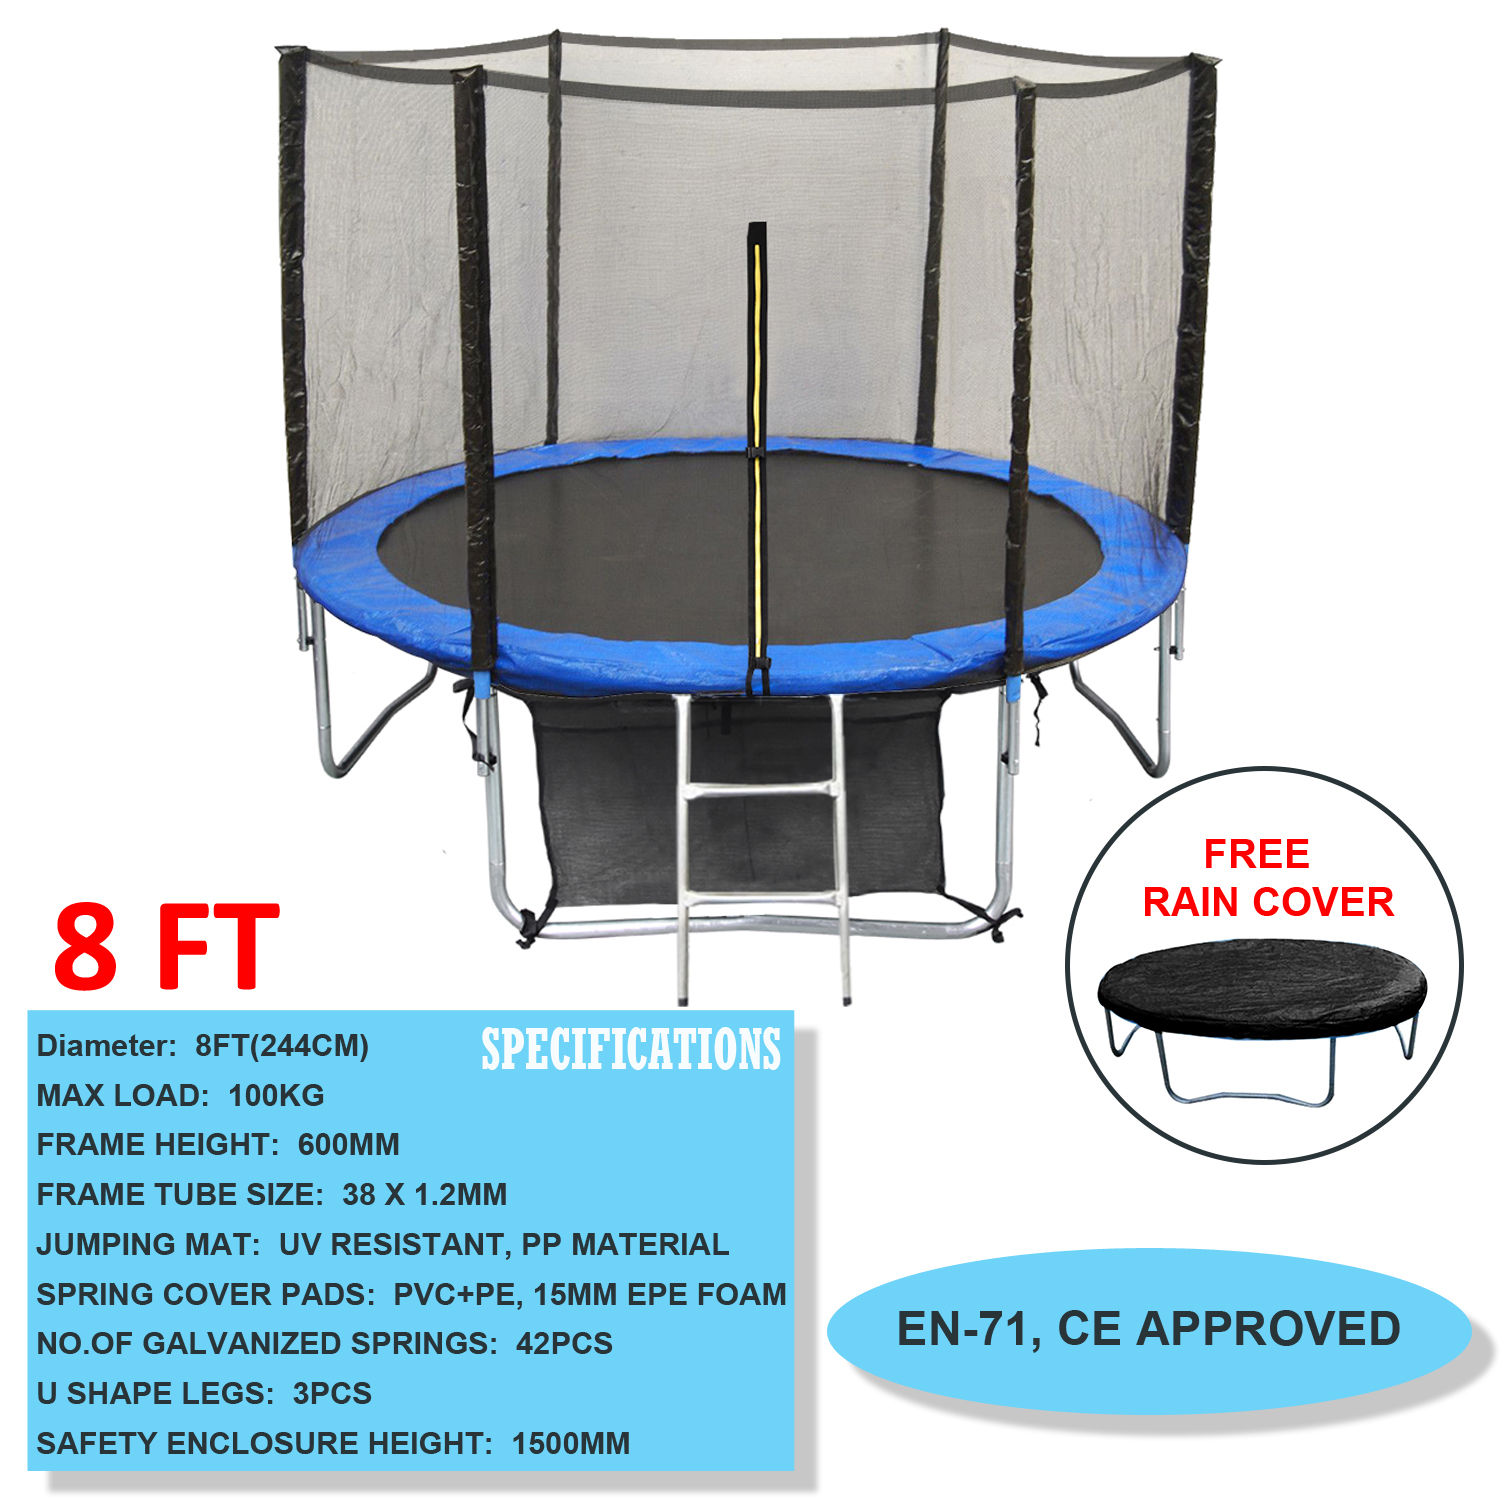 14 Ft Trampoline Safety Pad Epe Foam Spring: 6FT 8FT 10FT 12FT 14FT Trampoline With Safety Net